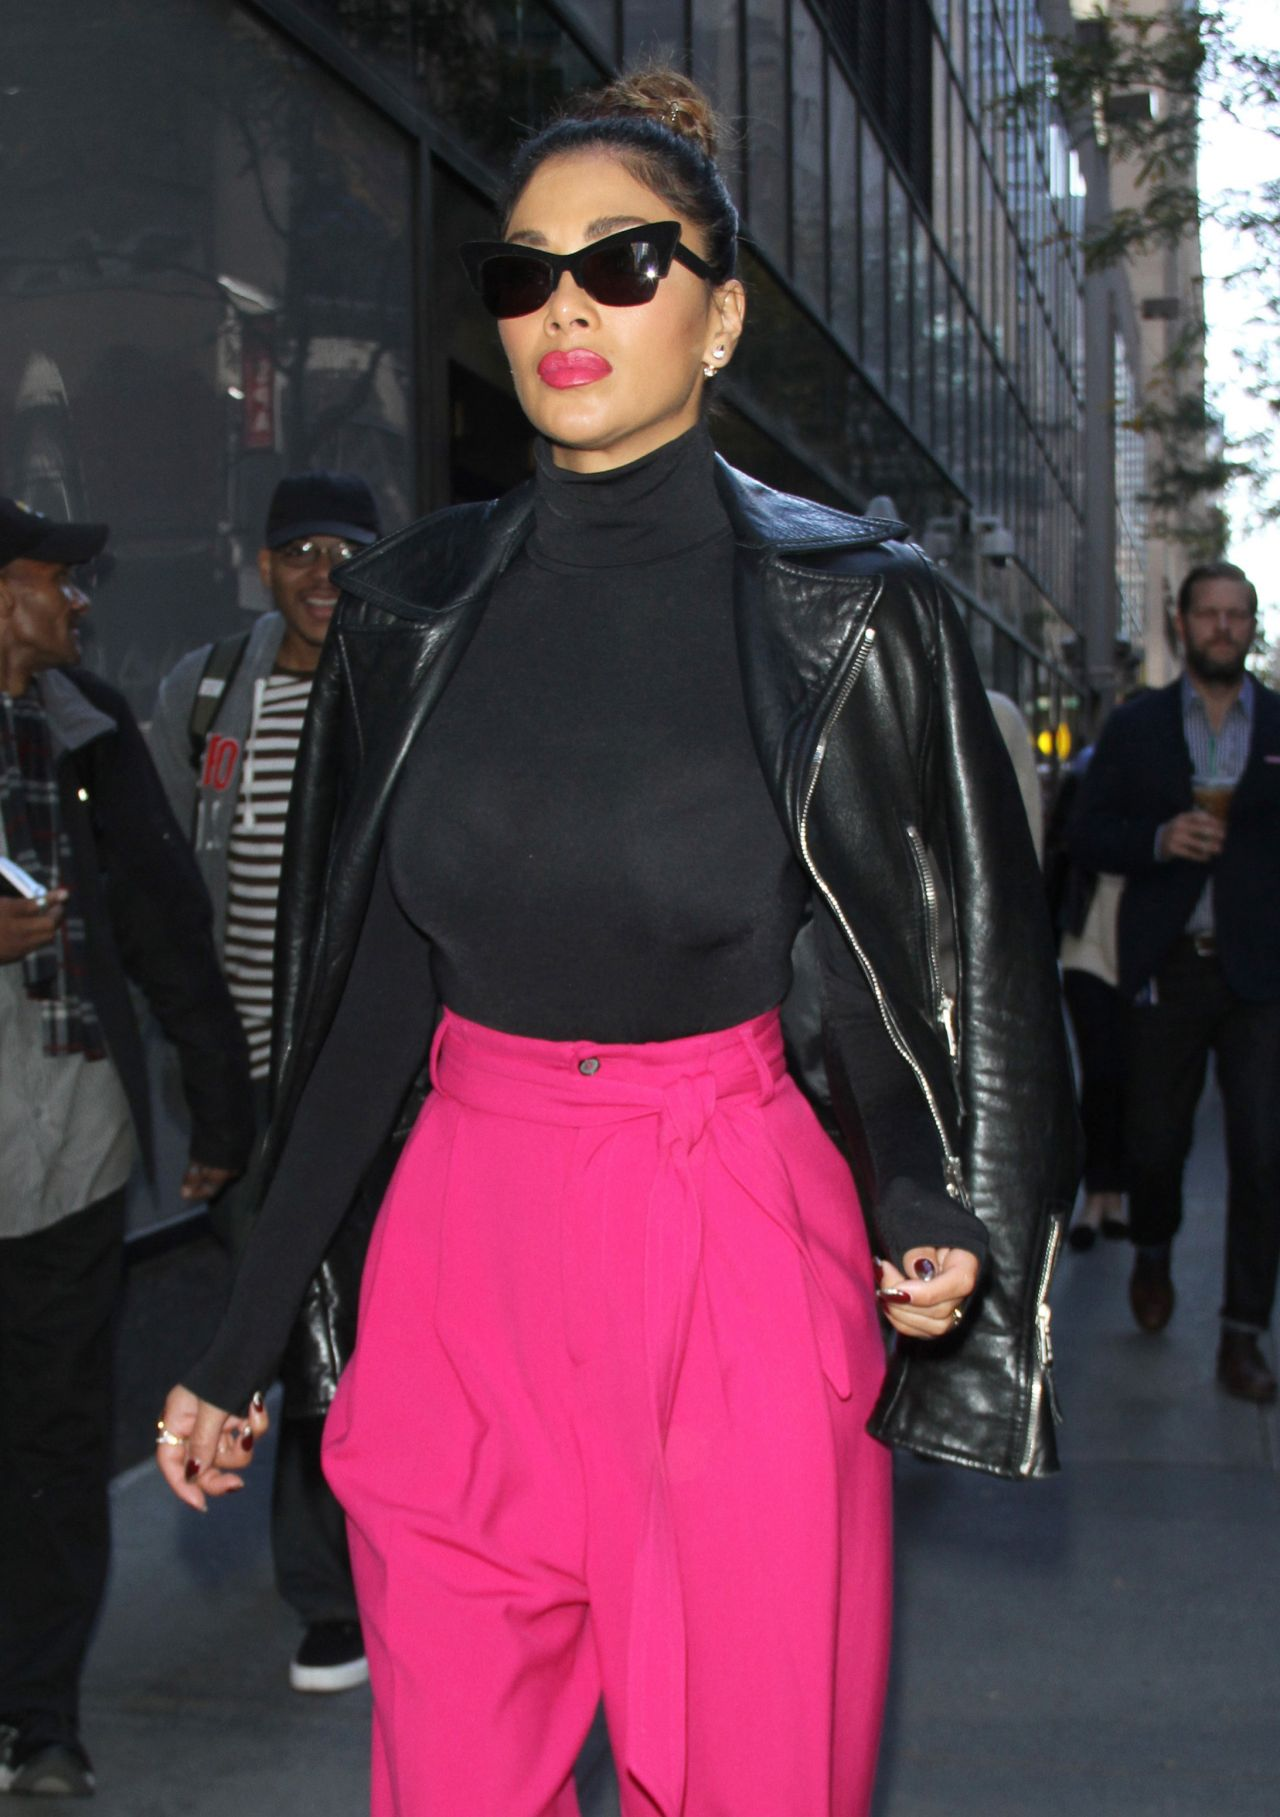 nicole-scherzinger-leaving-the-today-show-in-new-york-city-october-2015_4